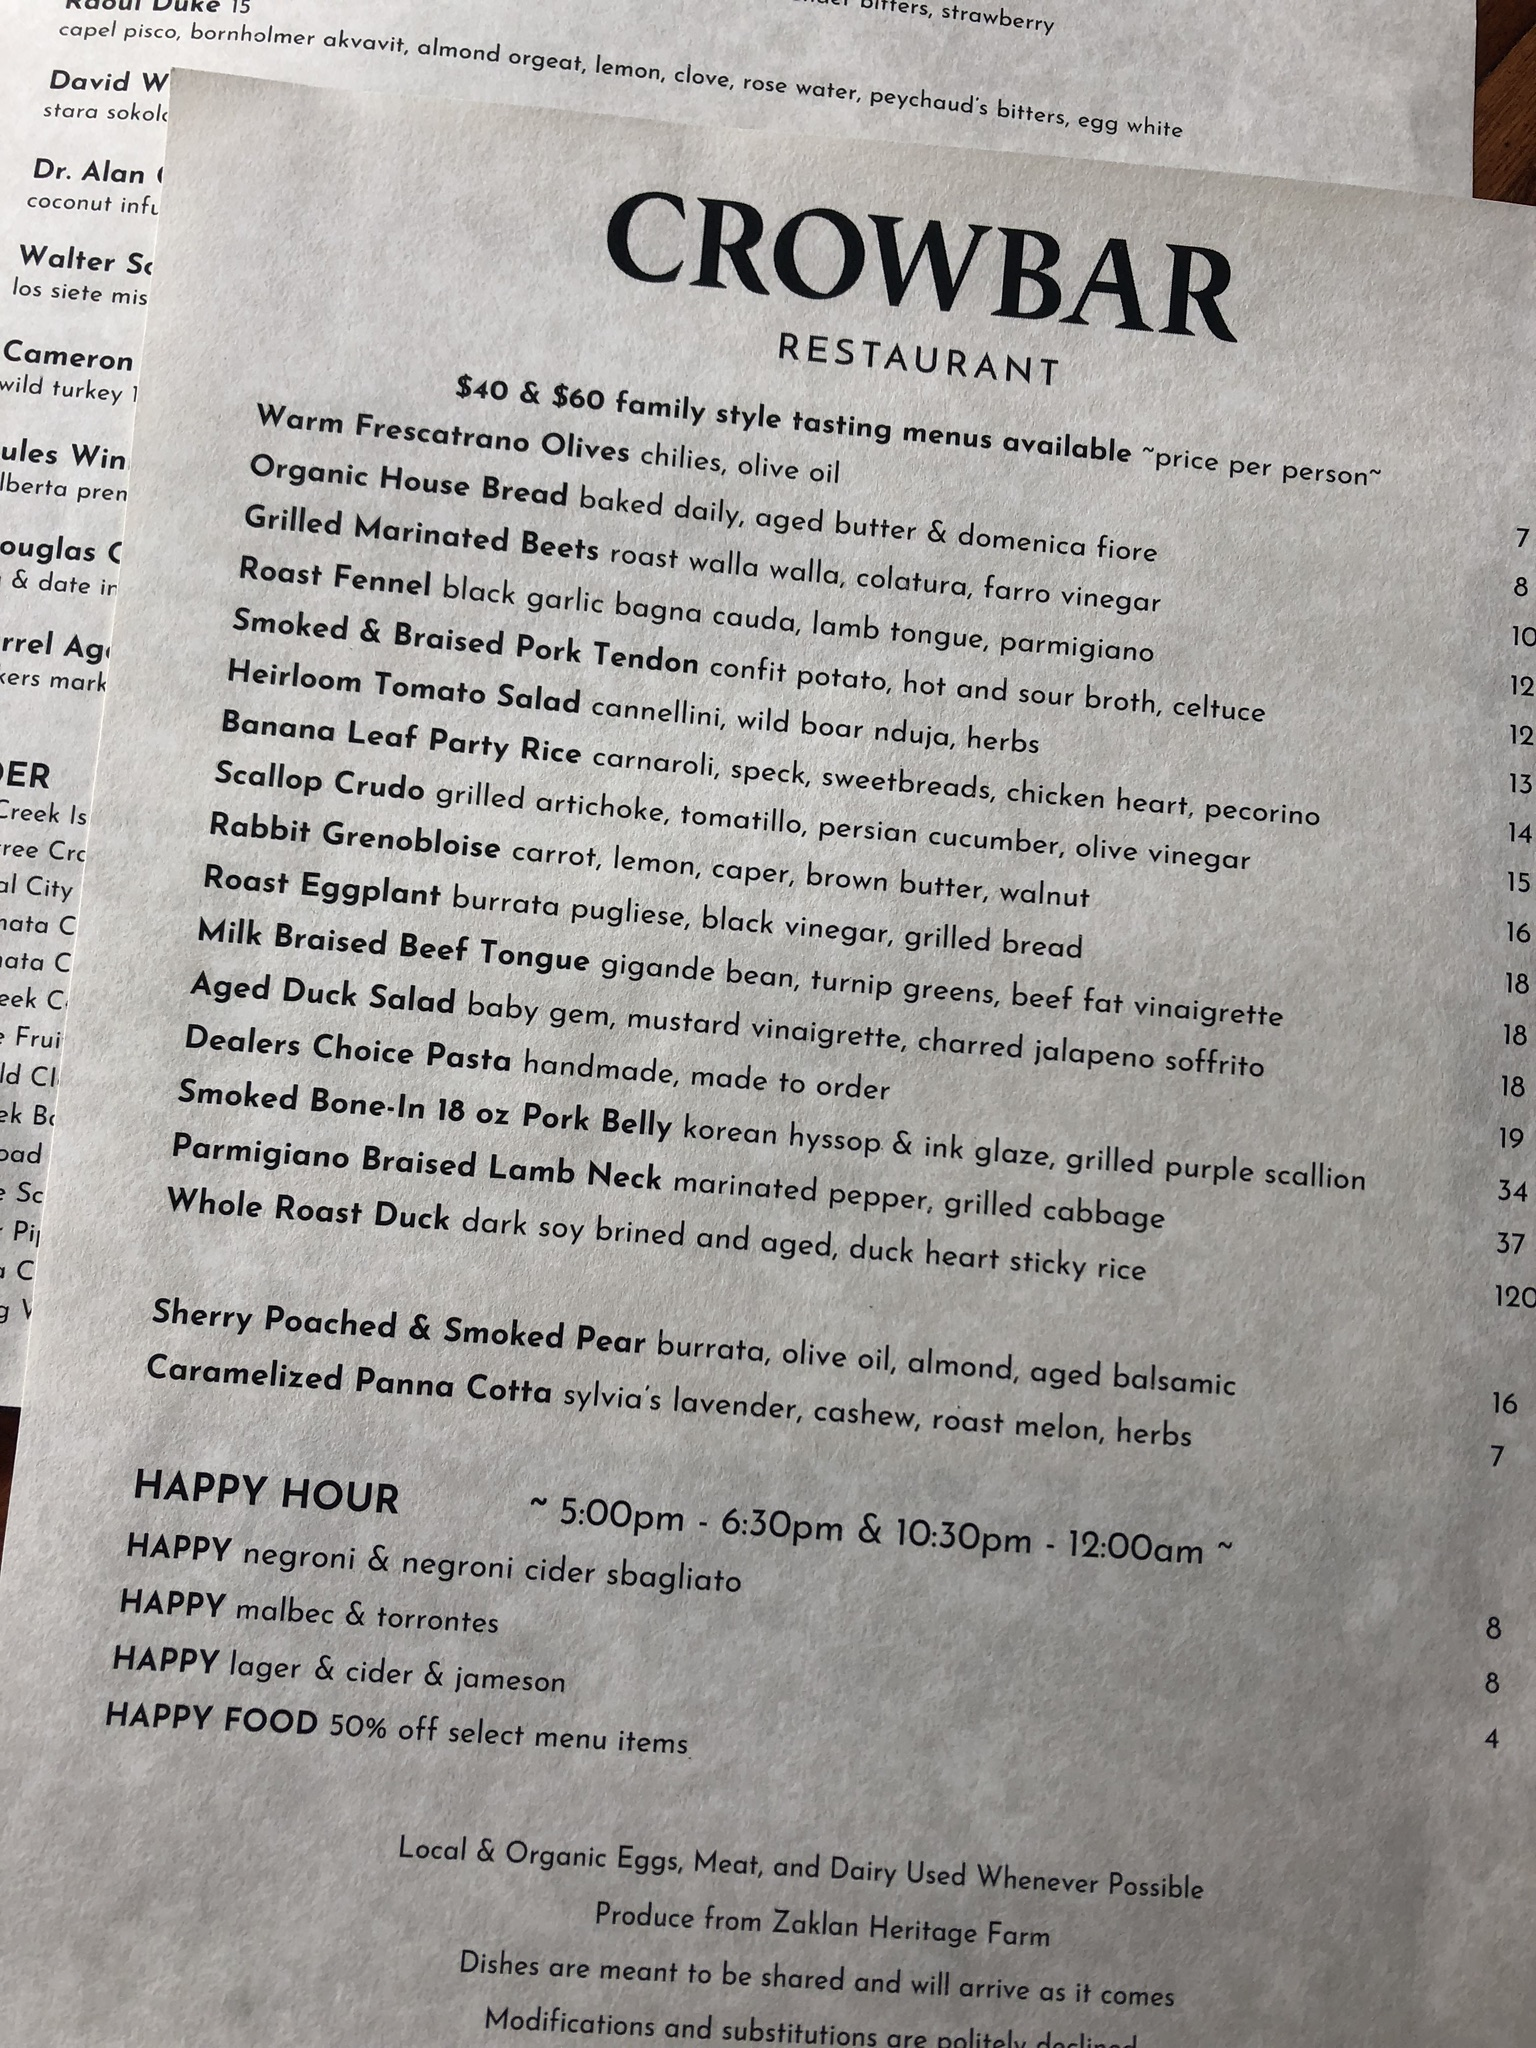 Crowbar Restaurant Food Menu